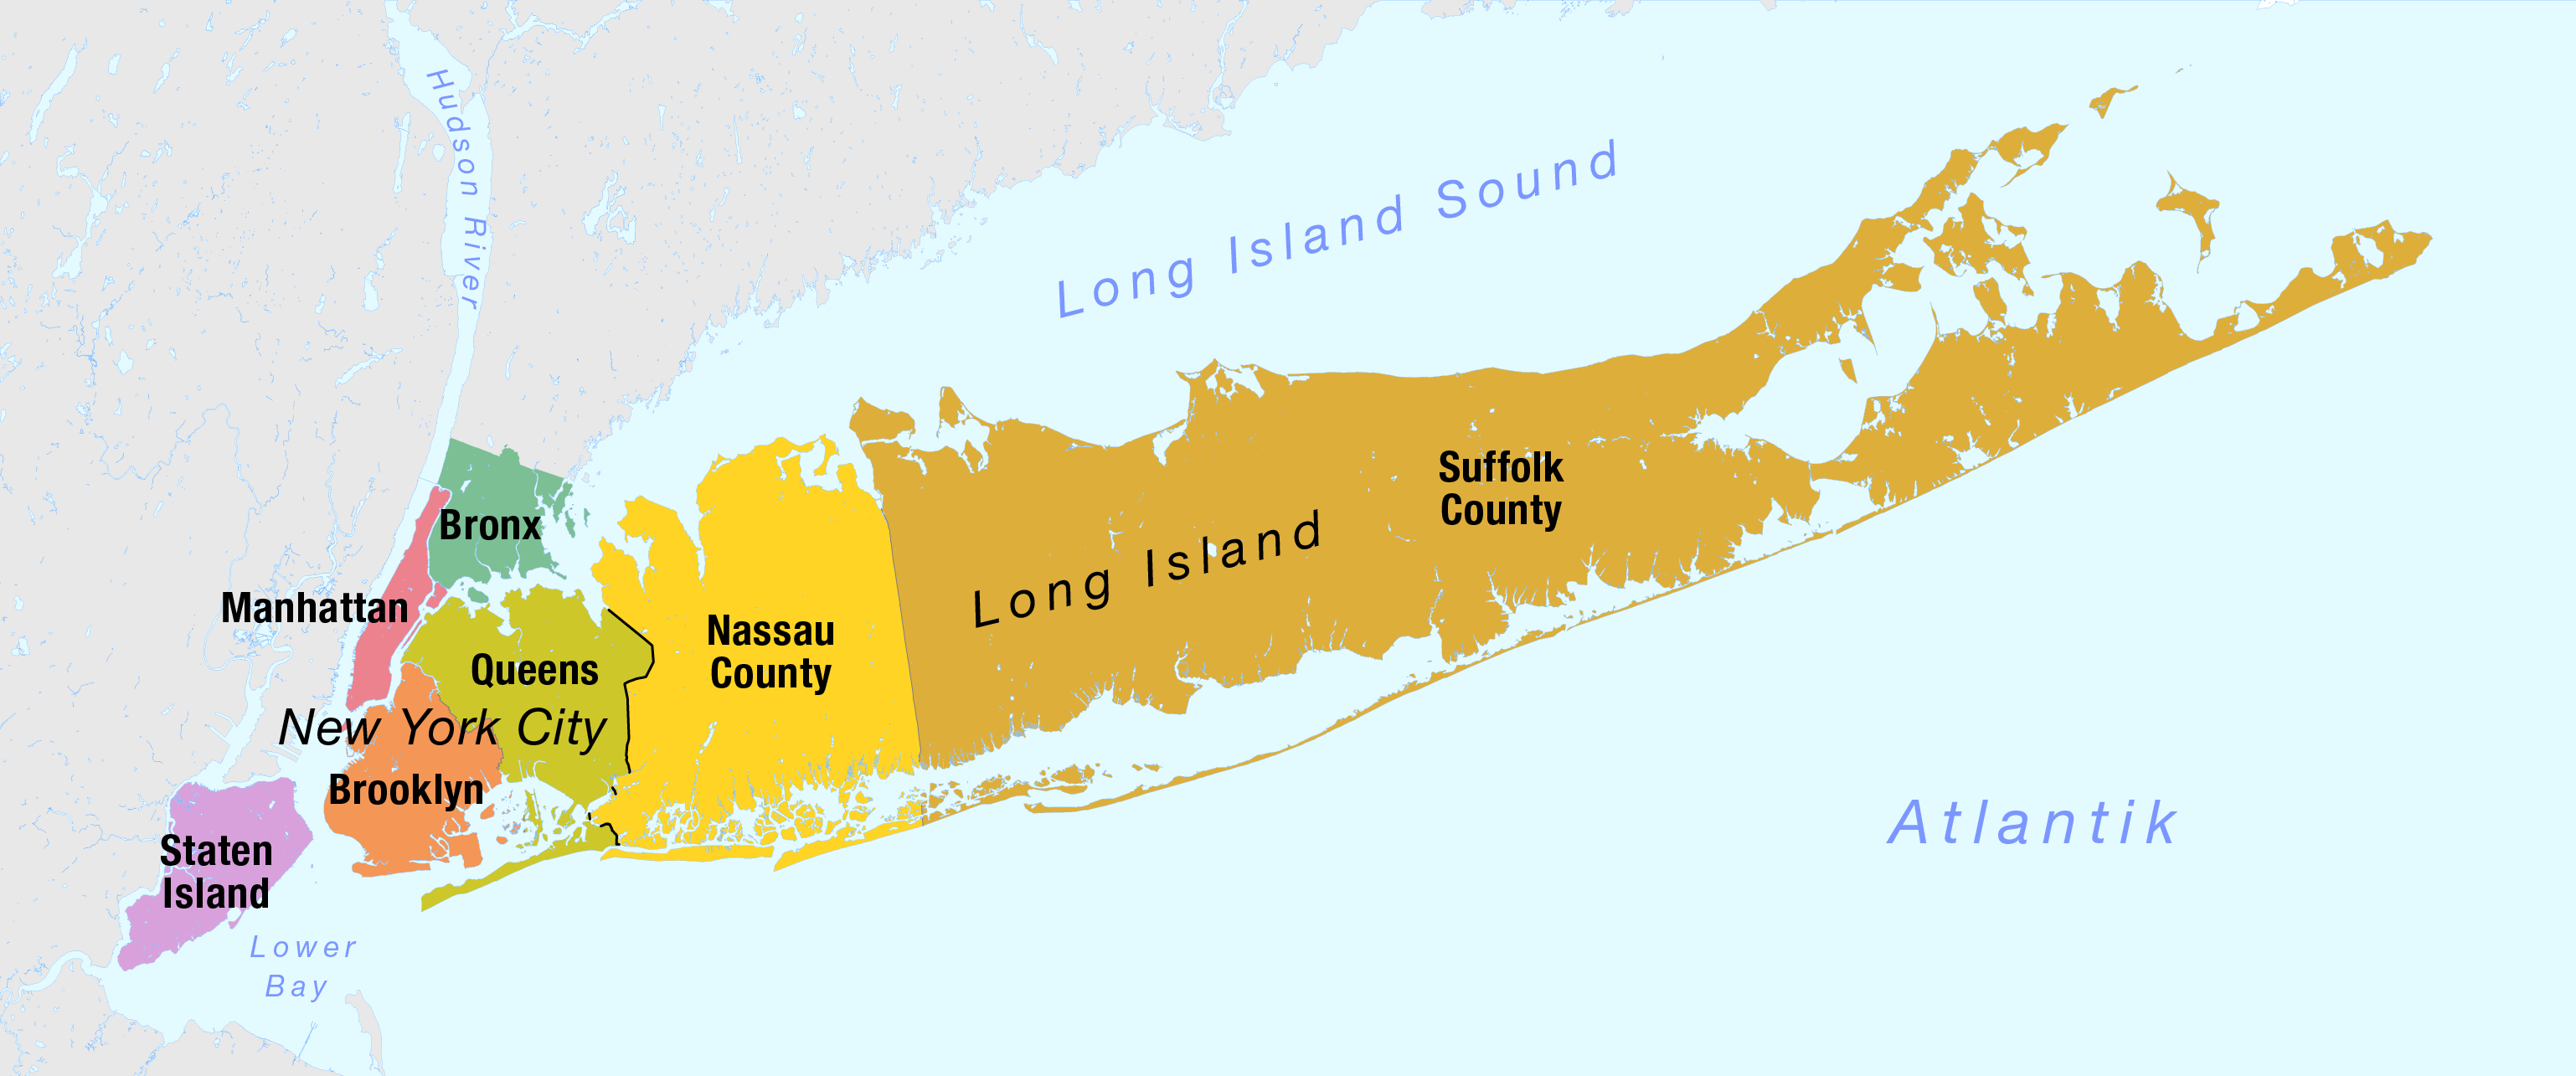 FileMap Of The Boroughs Of New York City And The Counties Of Long - New york city map with boroughs